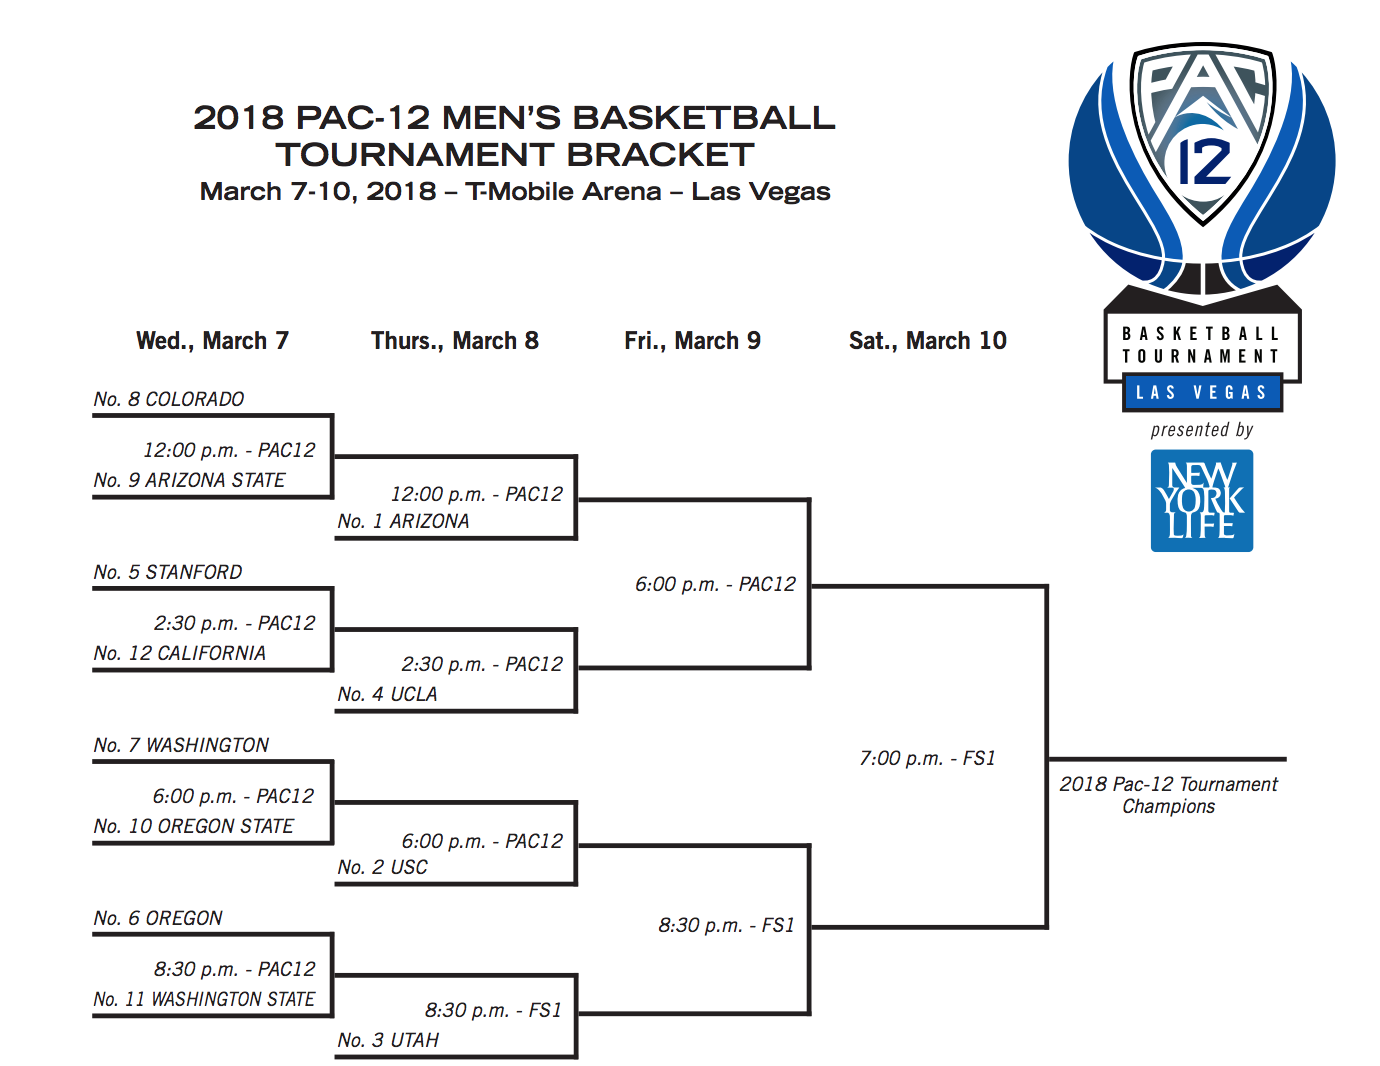 Pac-12 Tournament 2018: Bracket, schedule, scores, teams, and more | Physical Education Sports ...